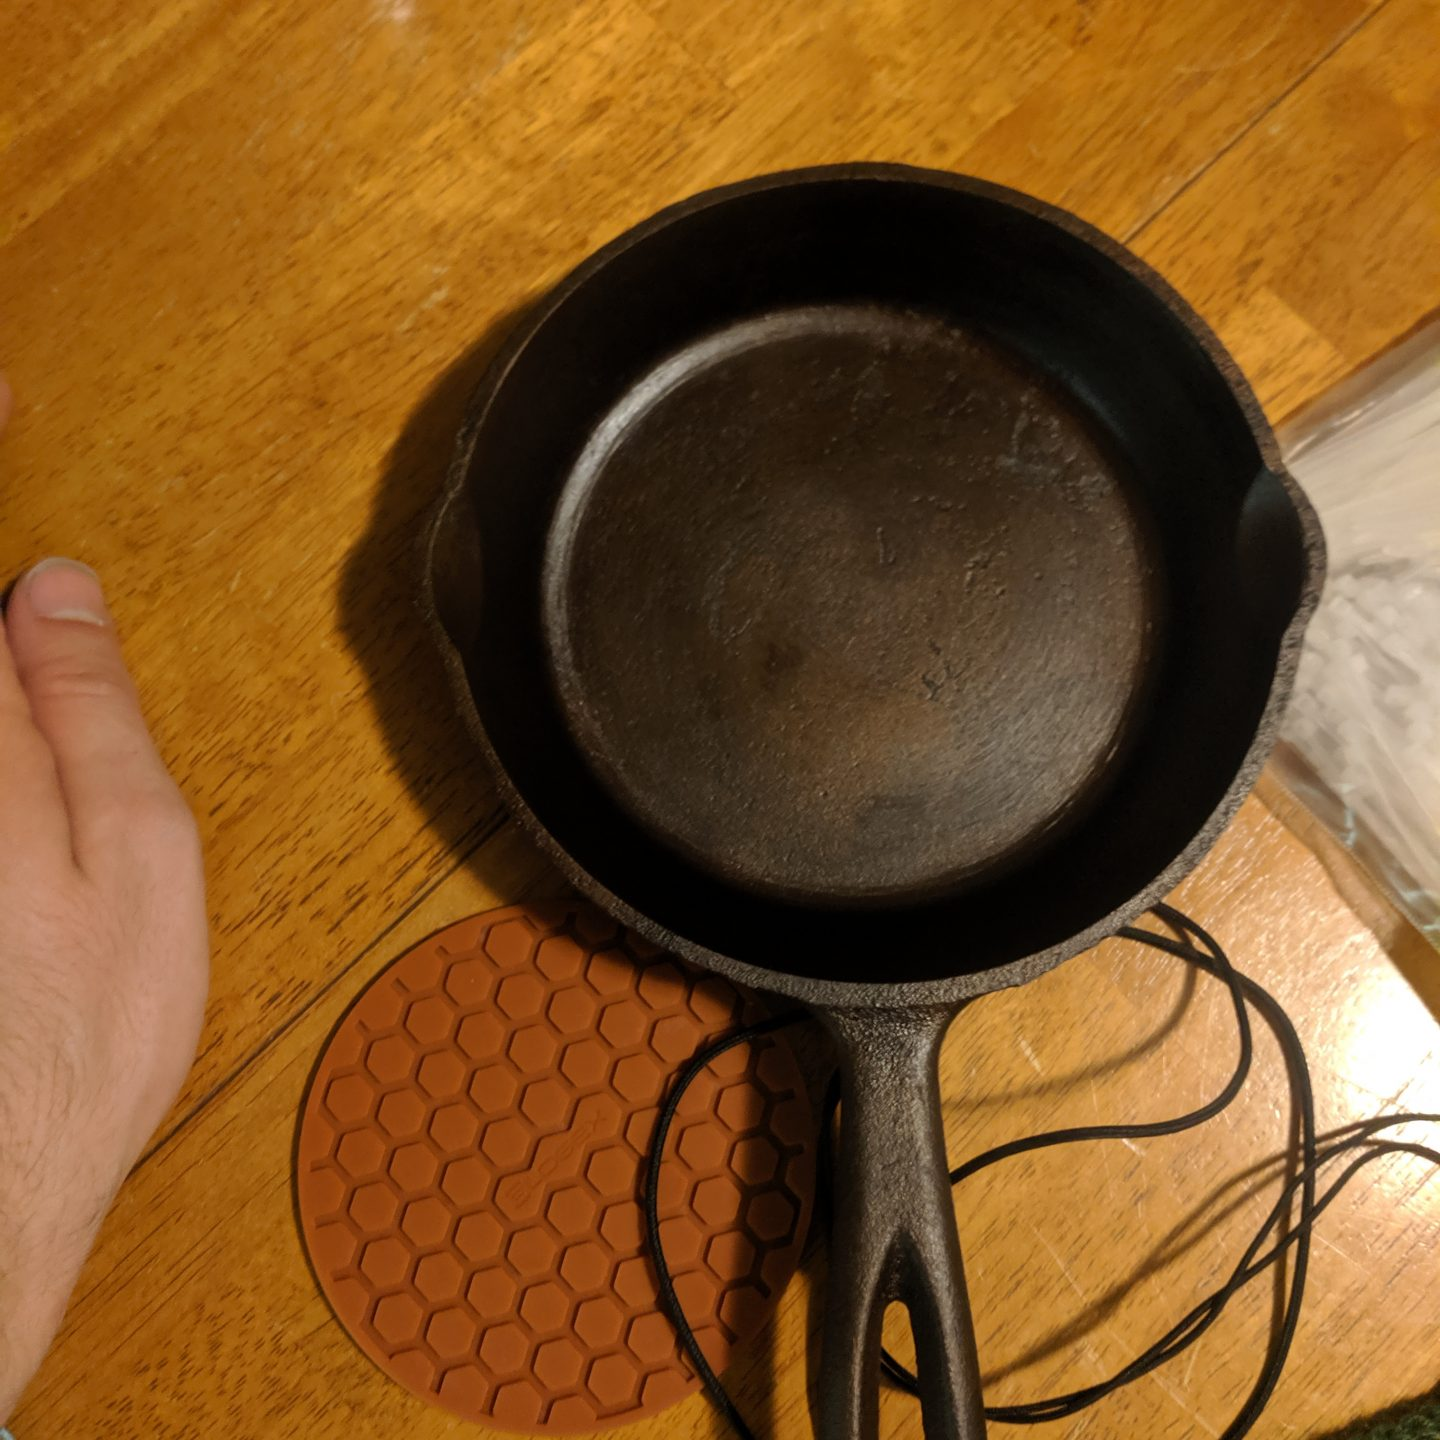 [07.25.19] Blasting Away the Rust: Re-Seasoning Cast iron from Scratch